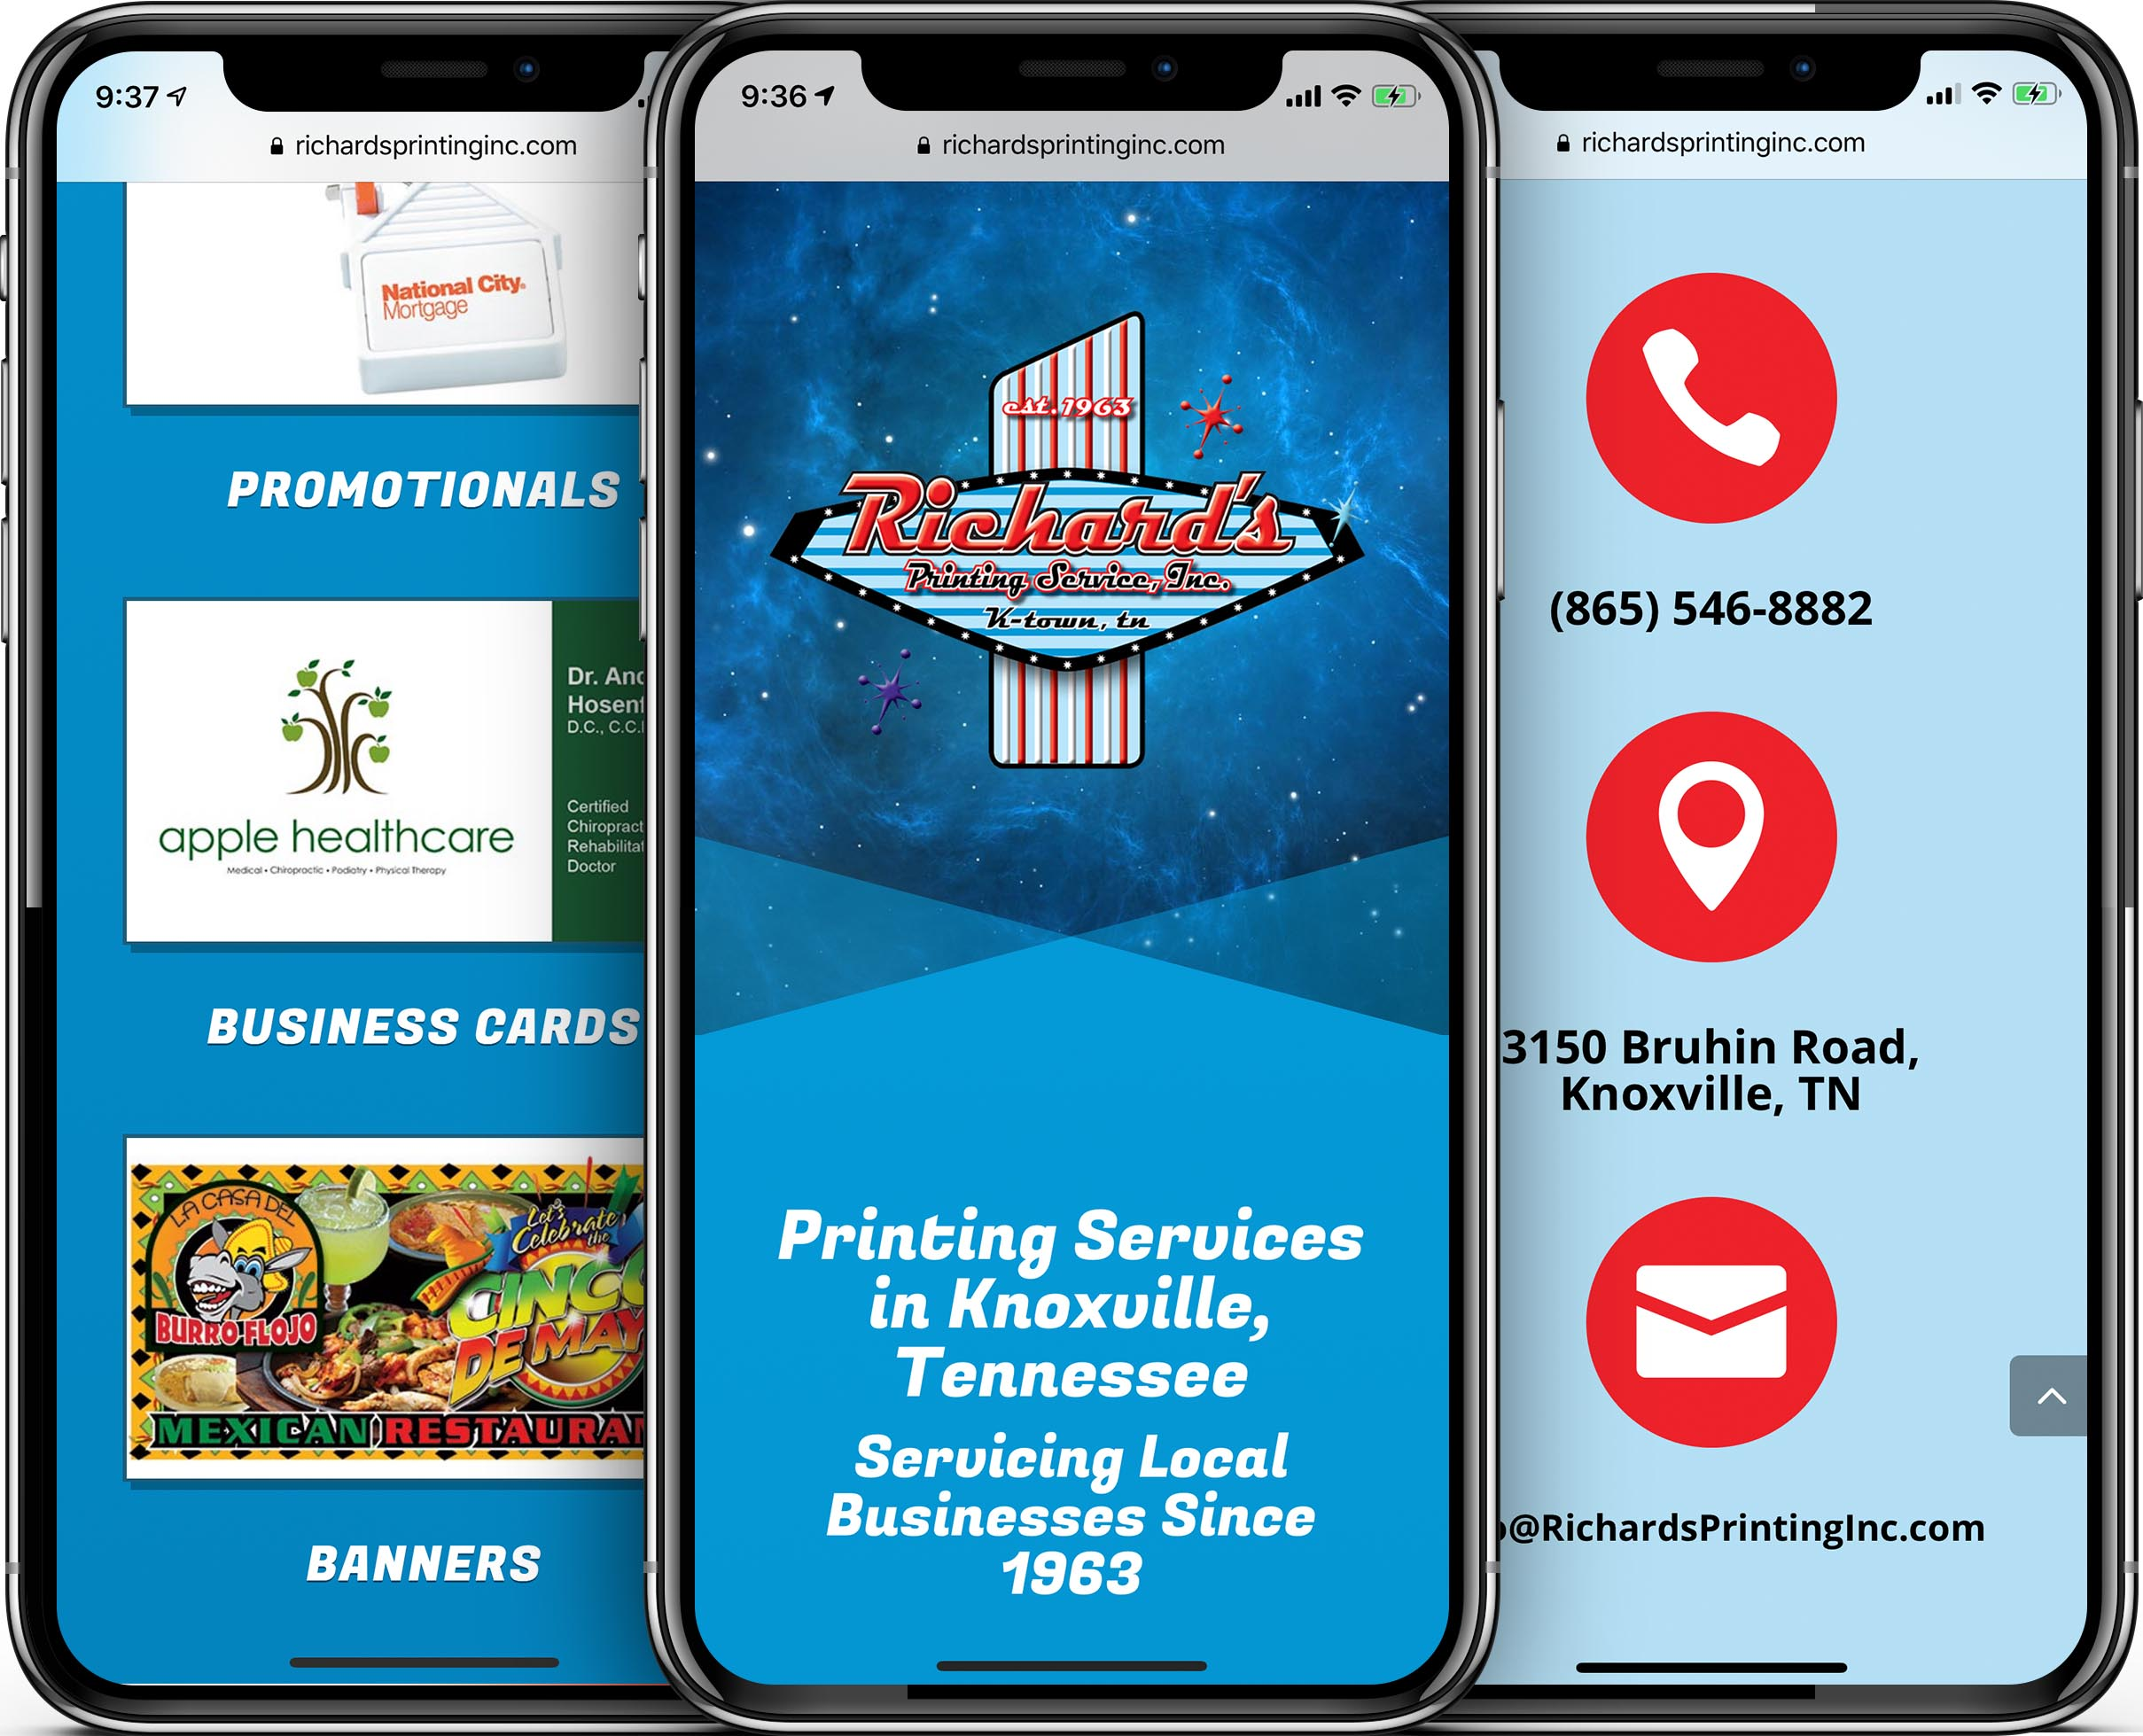 Richard's Printing Services Mobile-Friendly Web Design